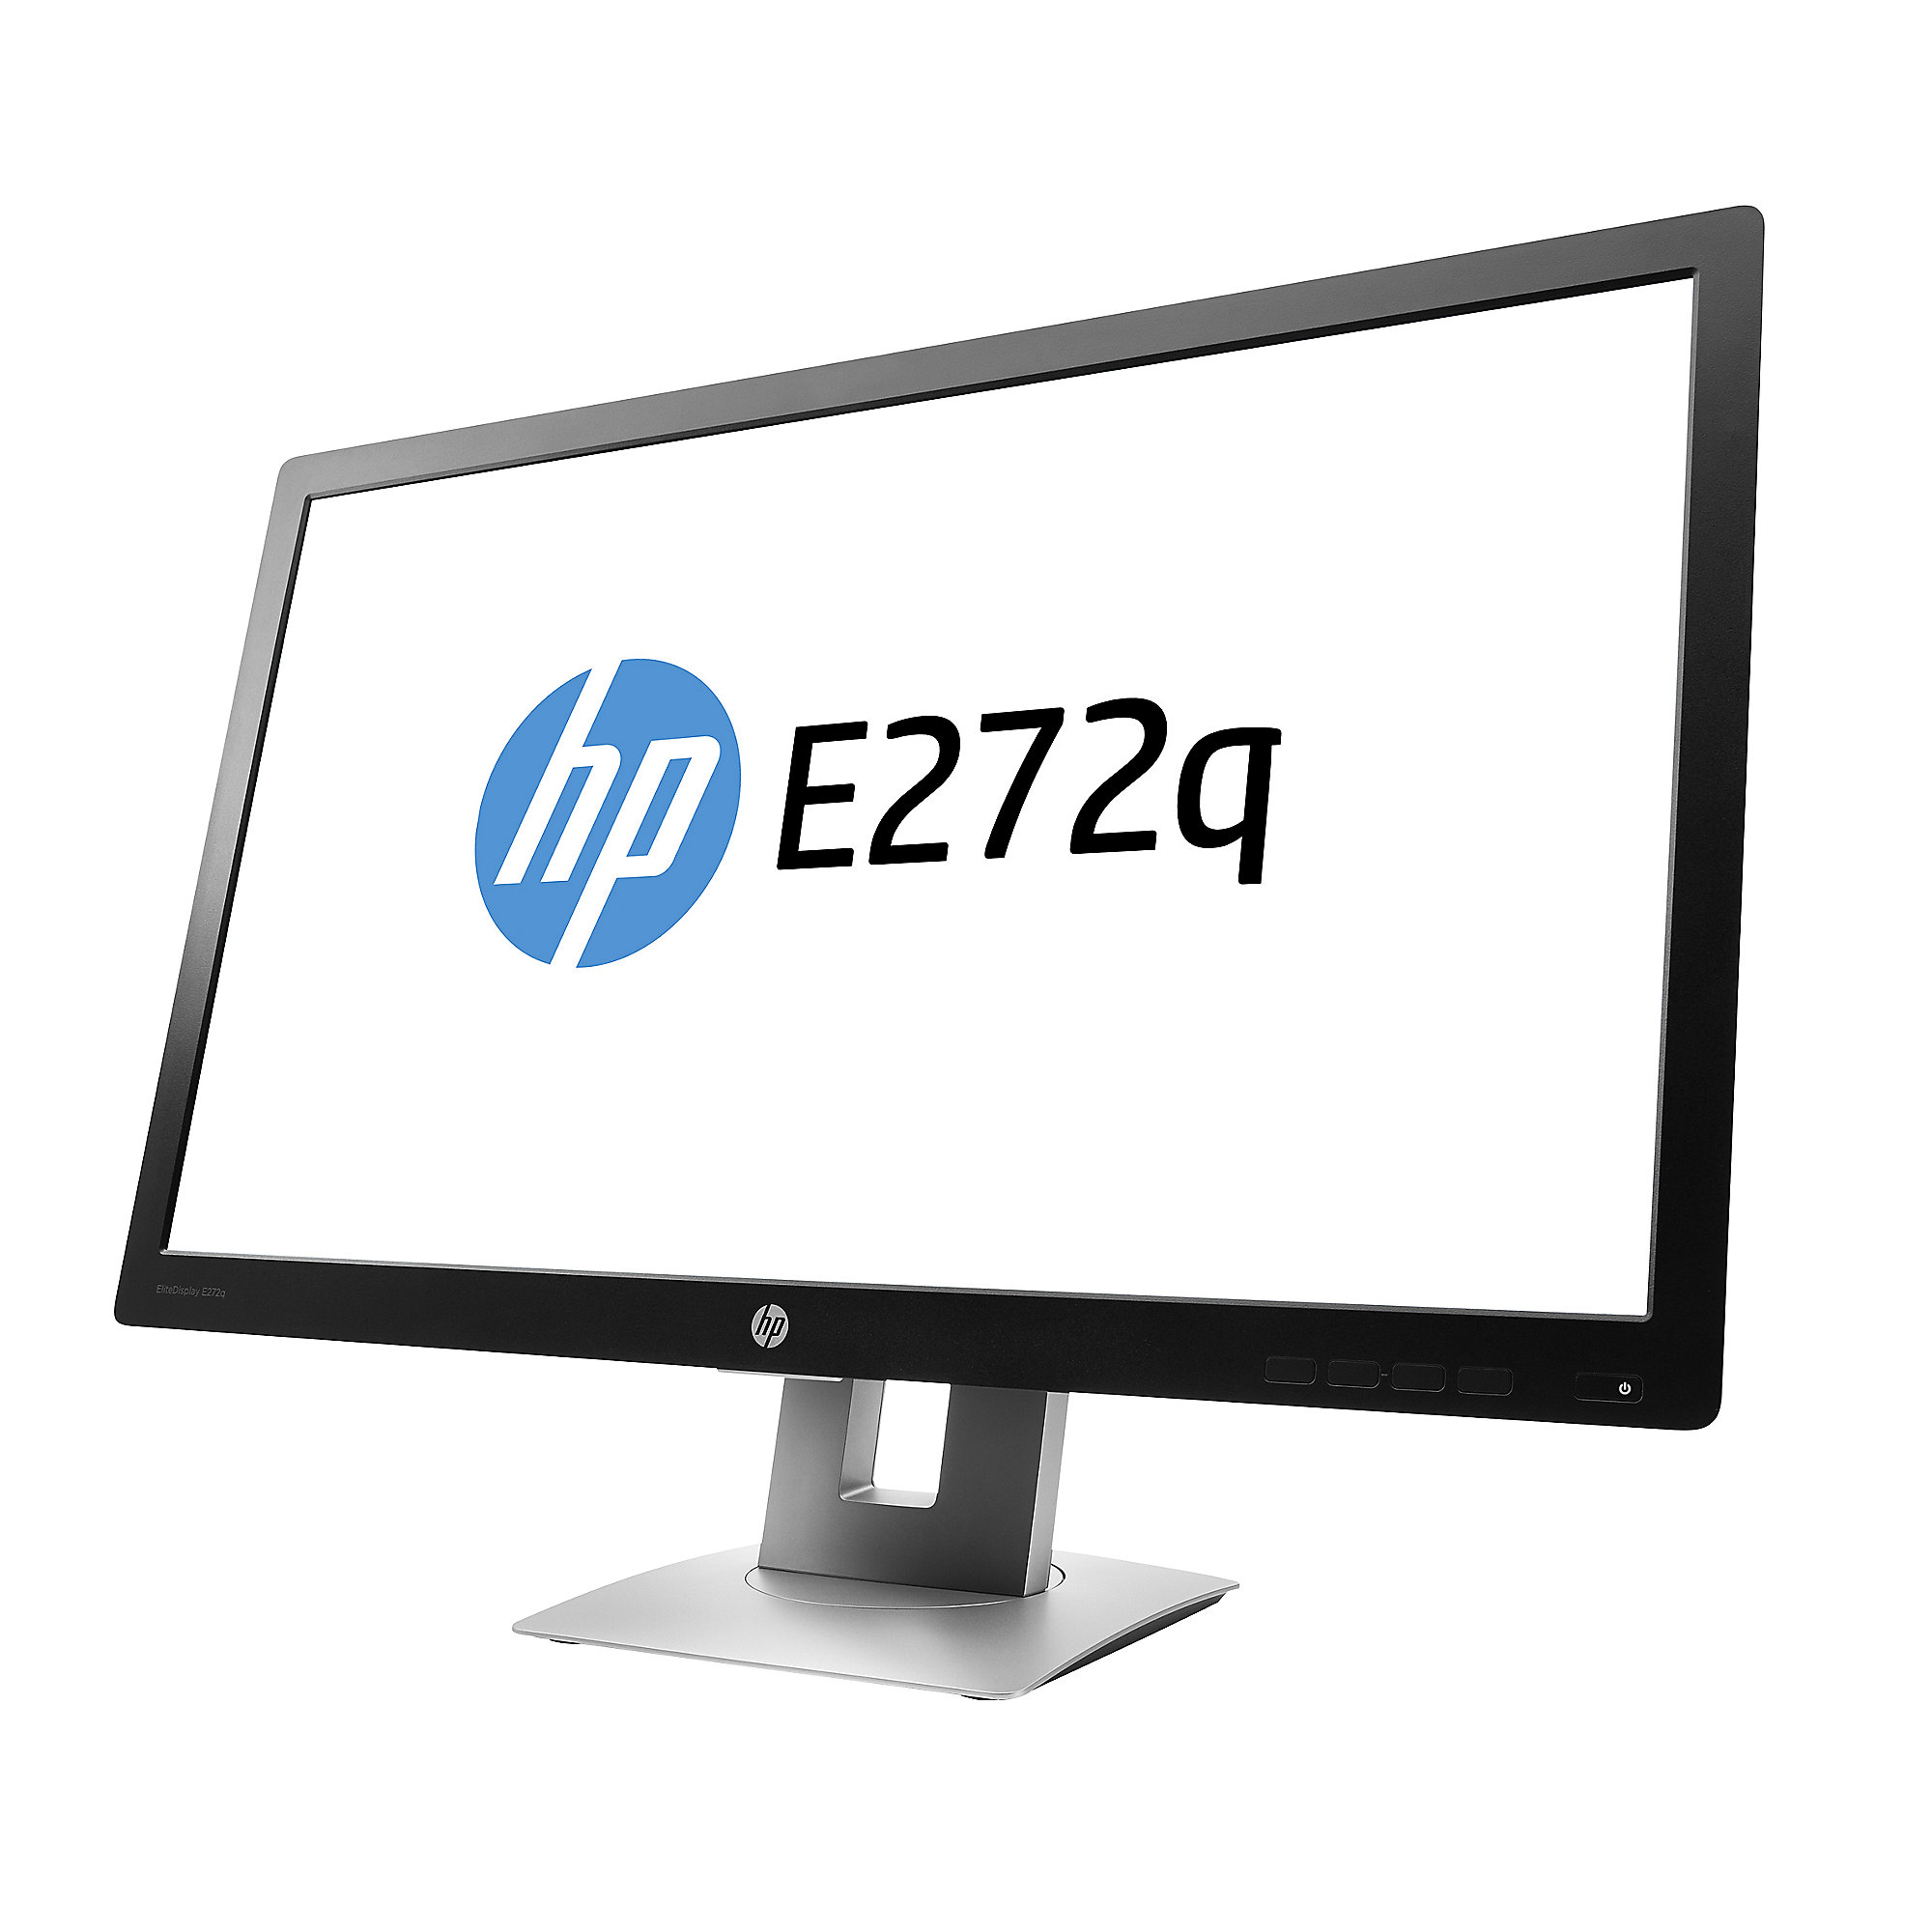 "HP EliteDisplay E272q 68,6cm (27"") QHD 16:9 TFT VGA/DVI/DP 7ms 5Mio:1 IPS"